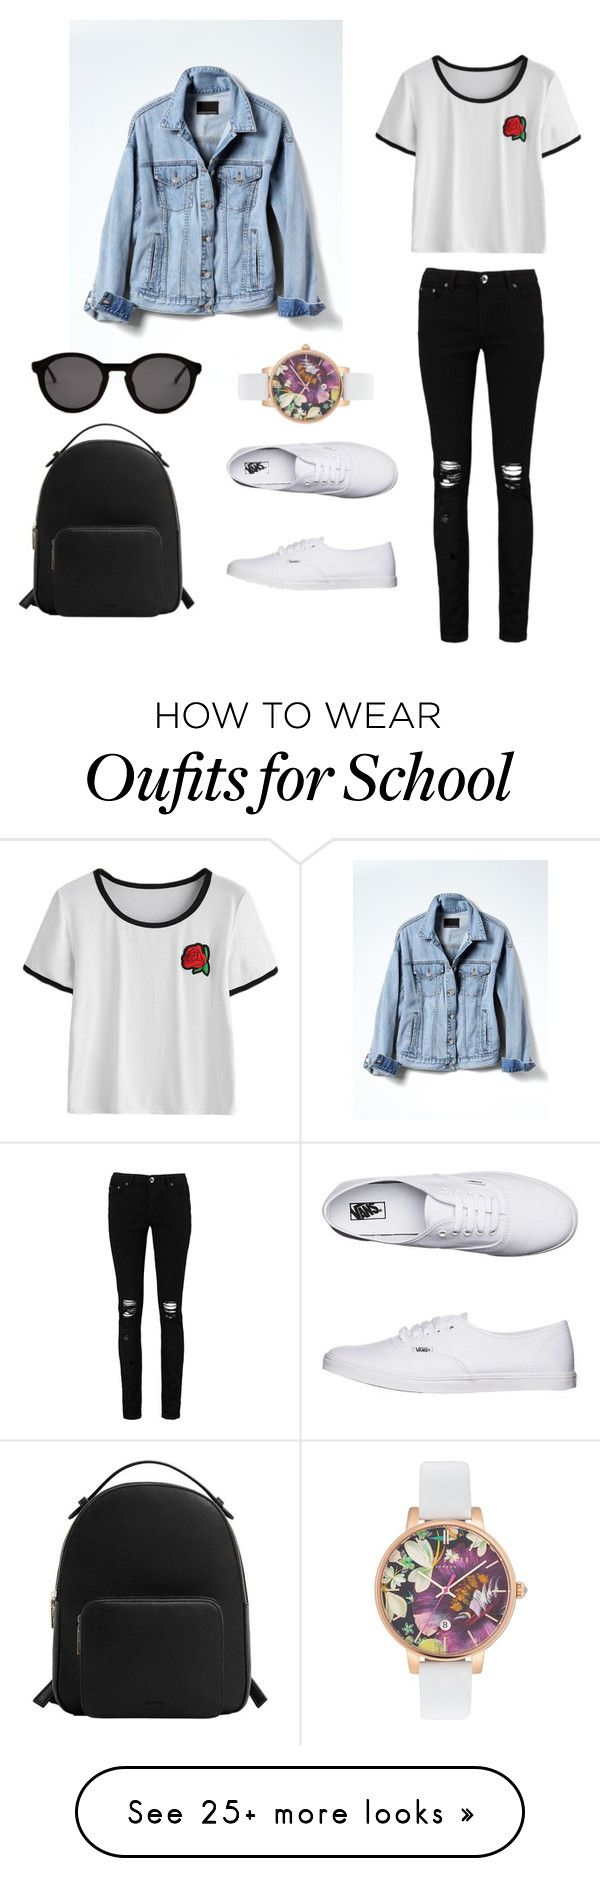 """school day"" by elina-kreuz on Polyvore featuring Boohoo, Banana Republic, Vans, MANGO, Ted Baker and Thierry Lasry"